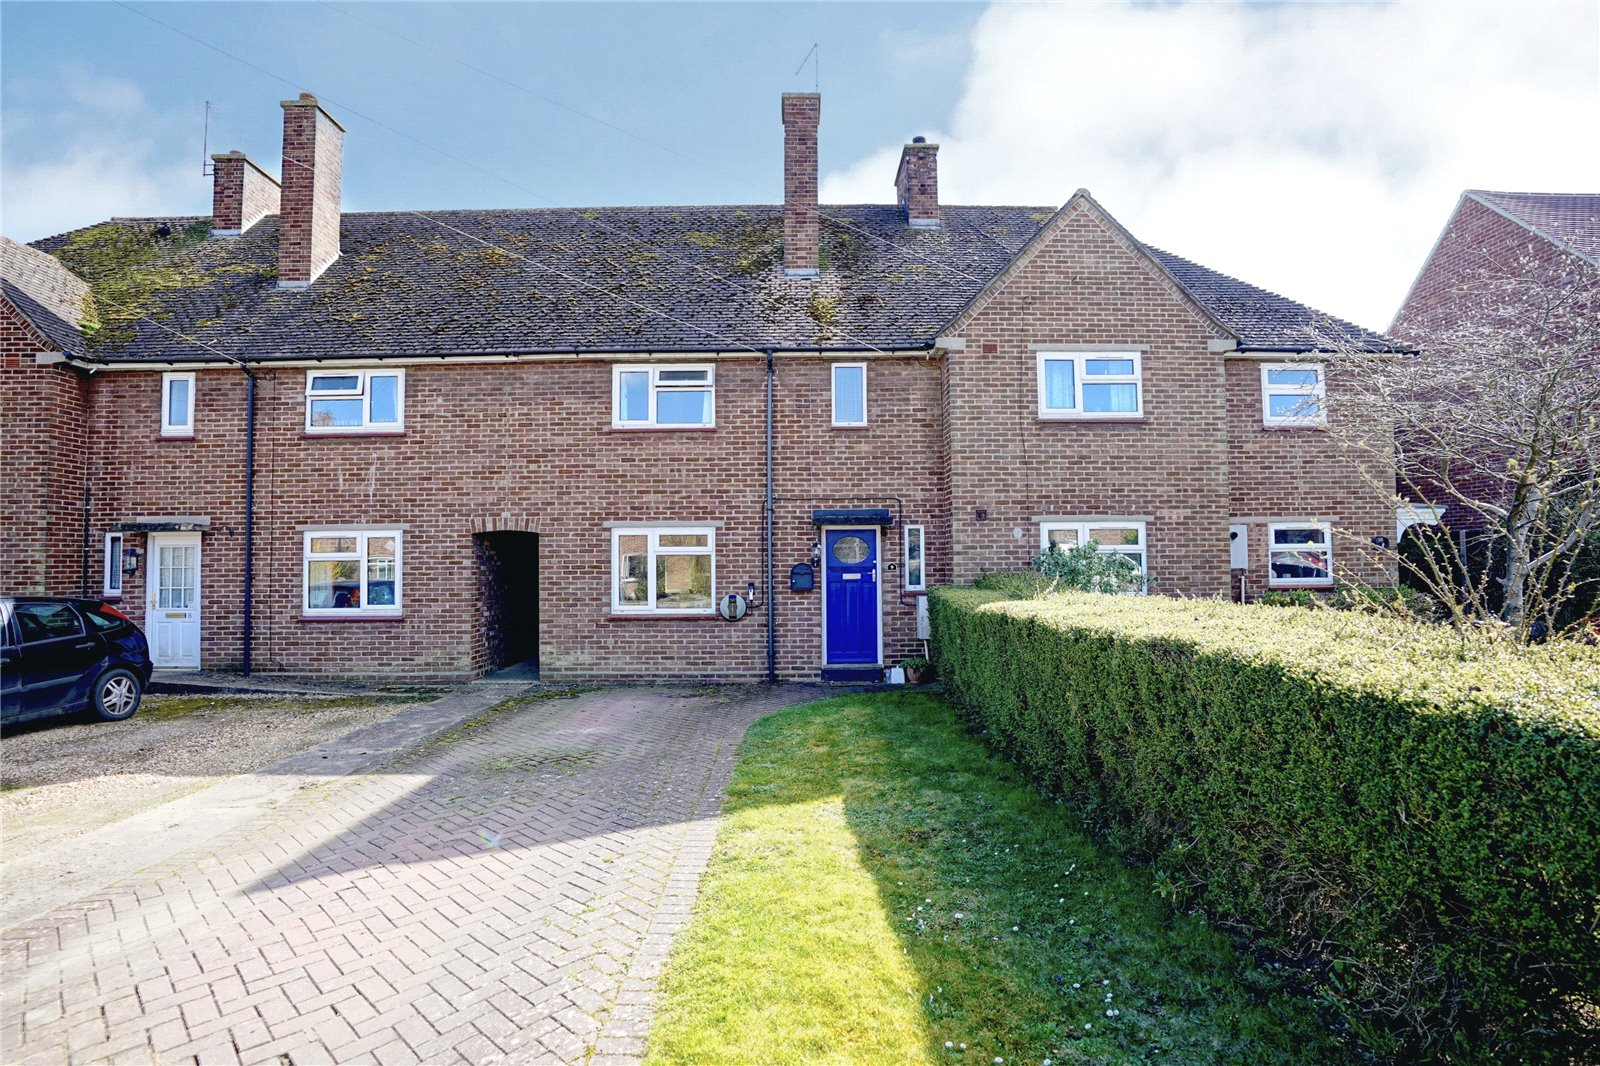 3 bed house for sale in Vicarage Walk, Great Staughton - Property Image 1